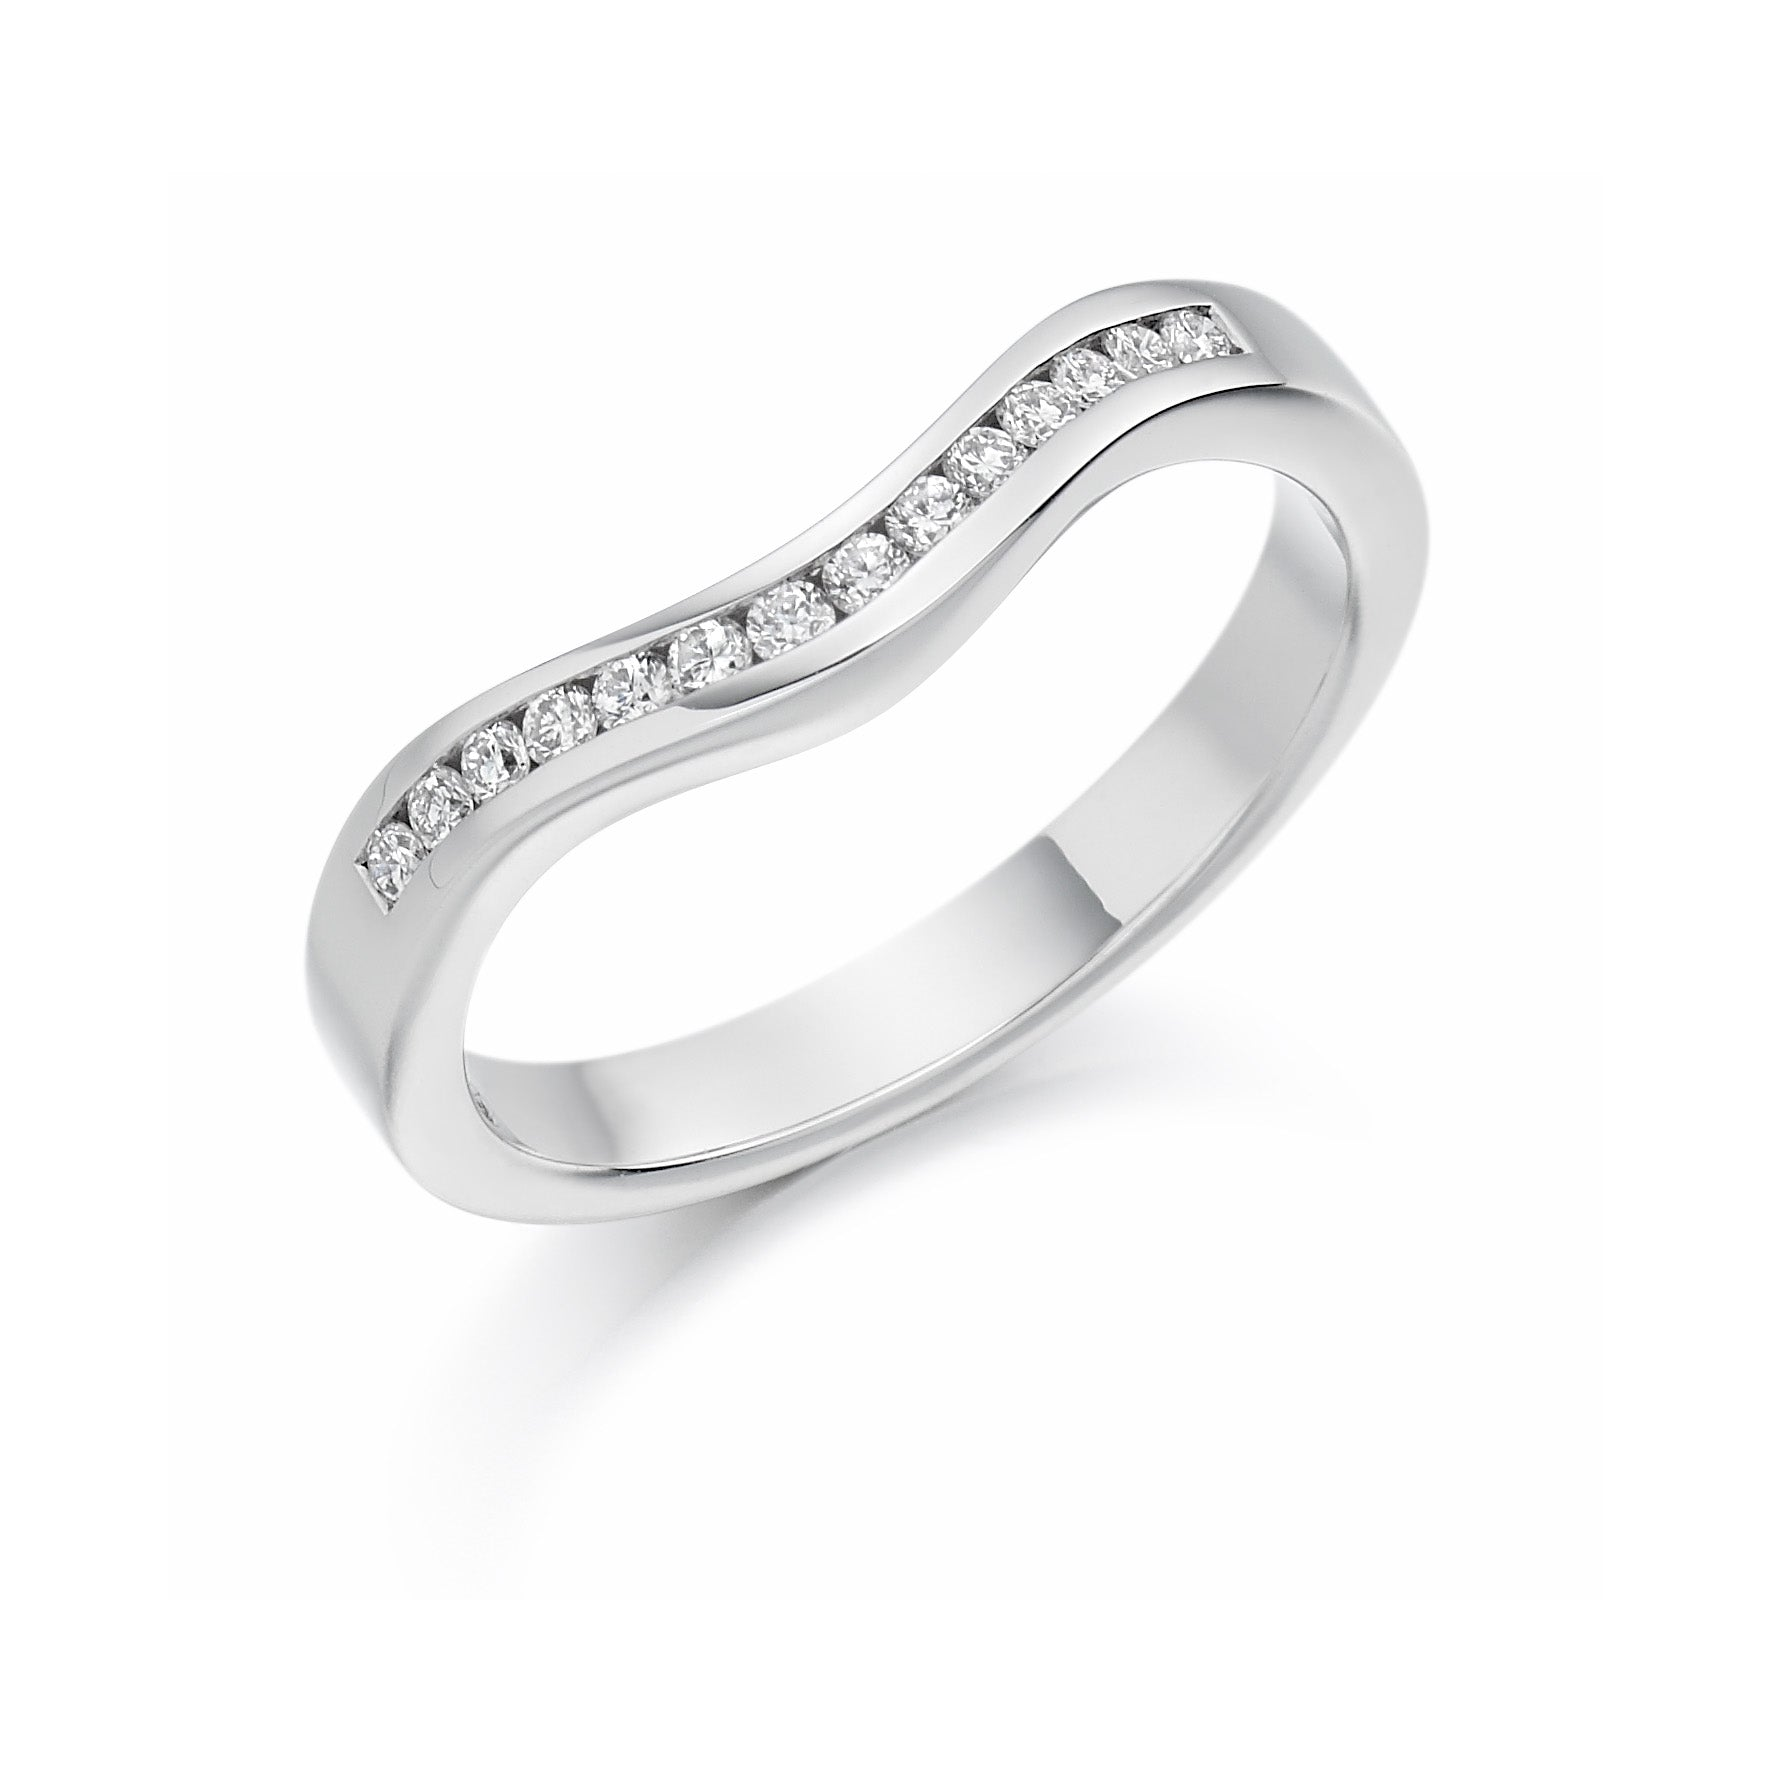 0.16ct Round Brilliant Cut Diamonds Curved Band - Eternity Ring - (Home Try-On)